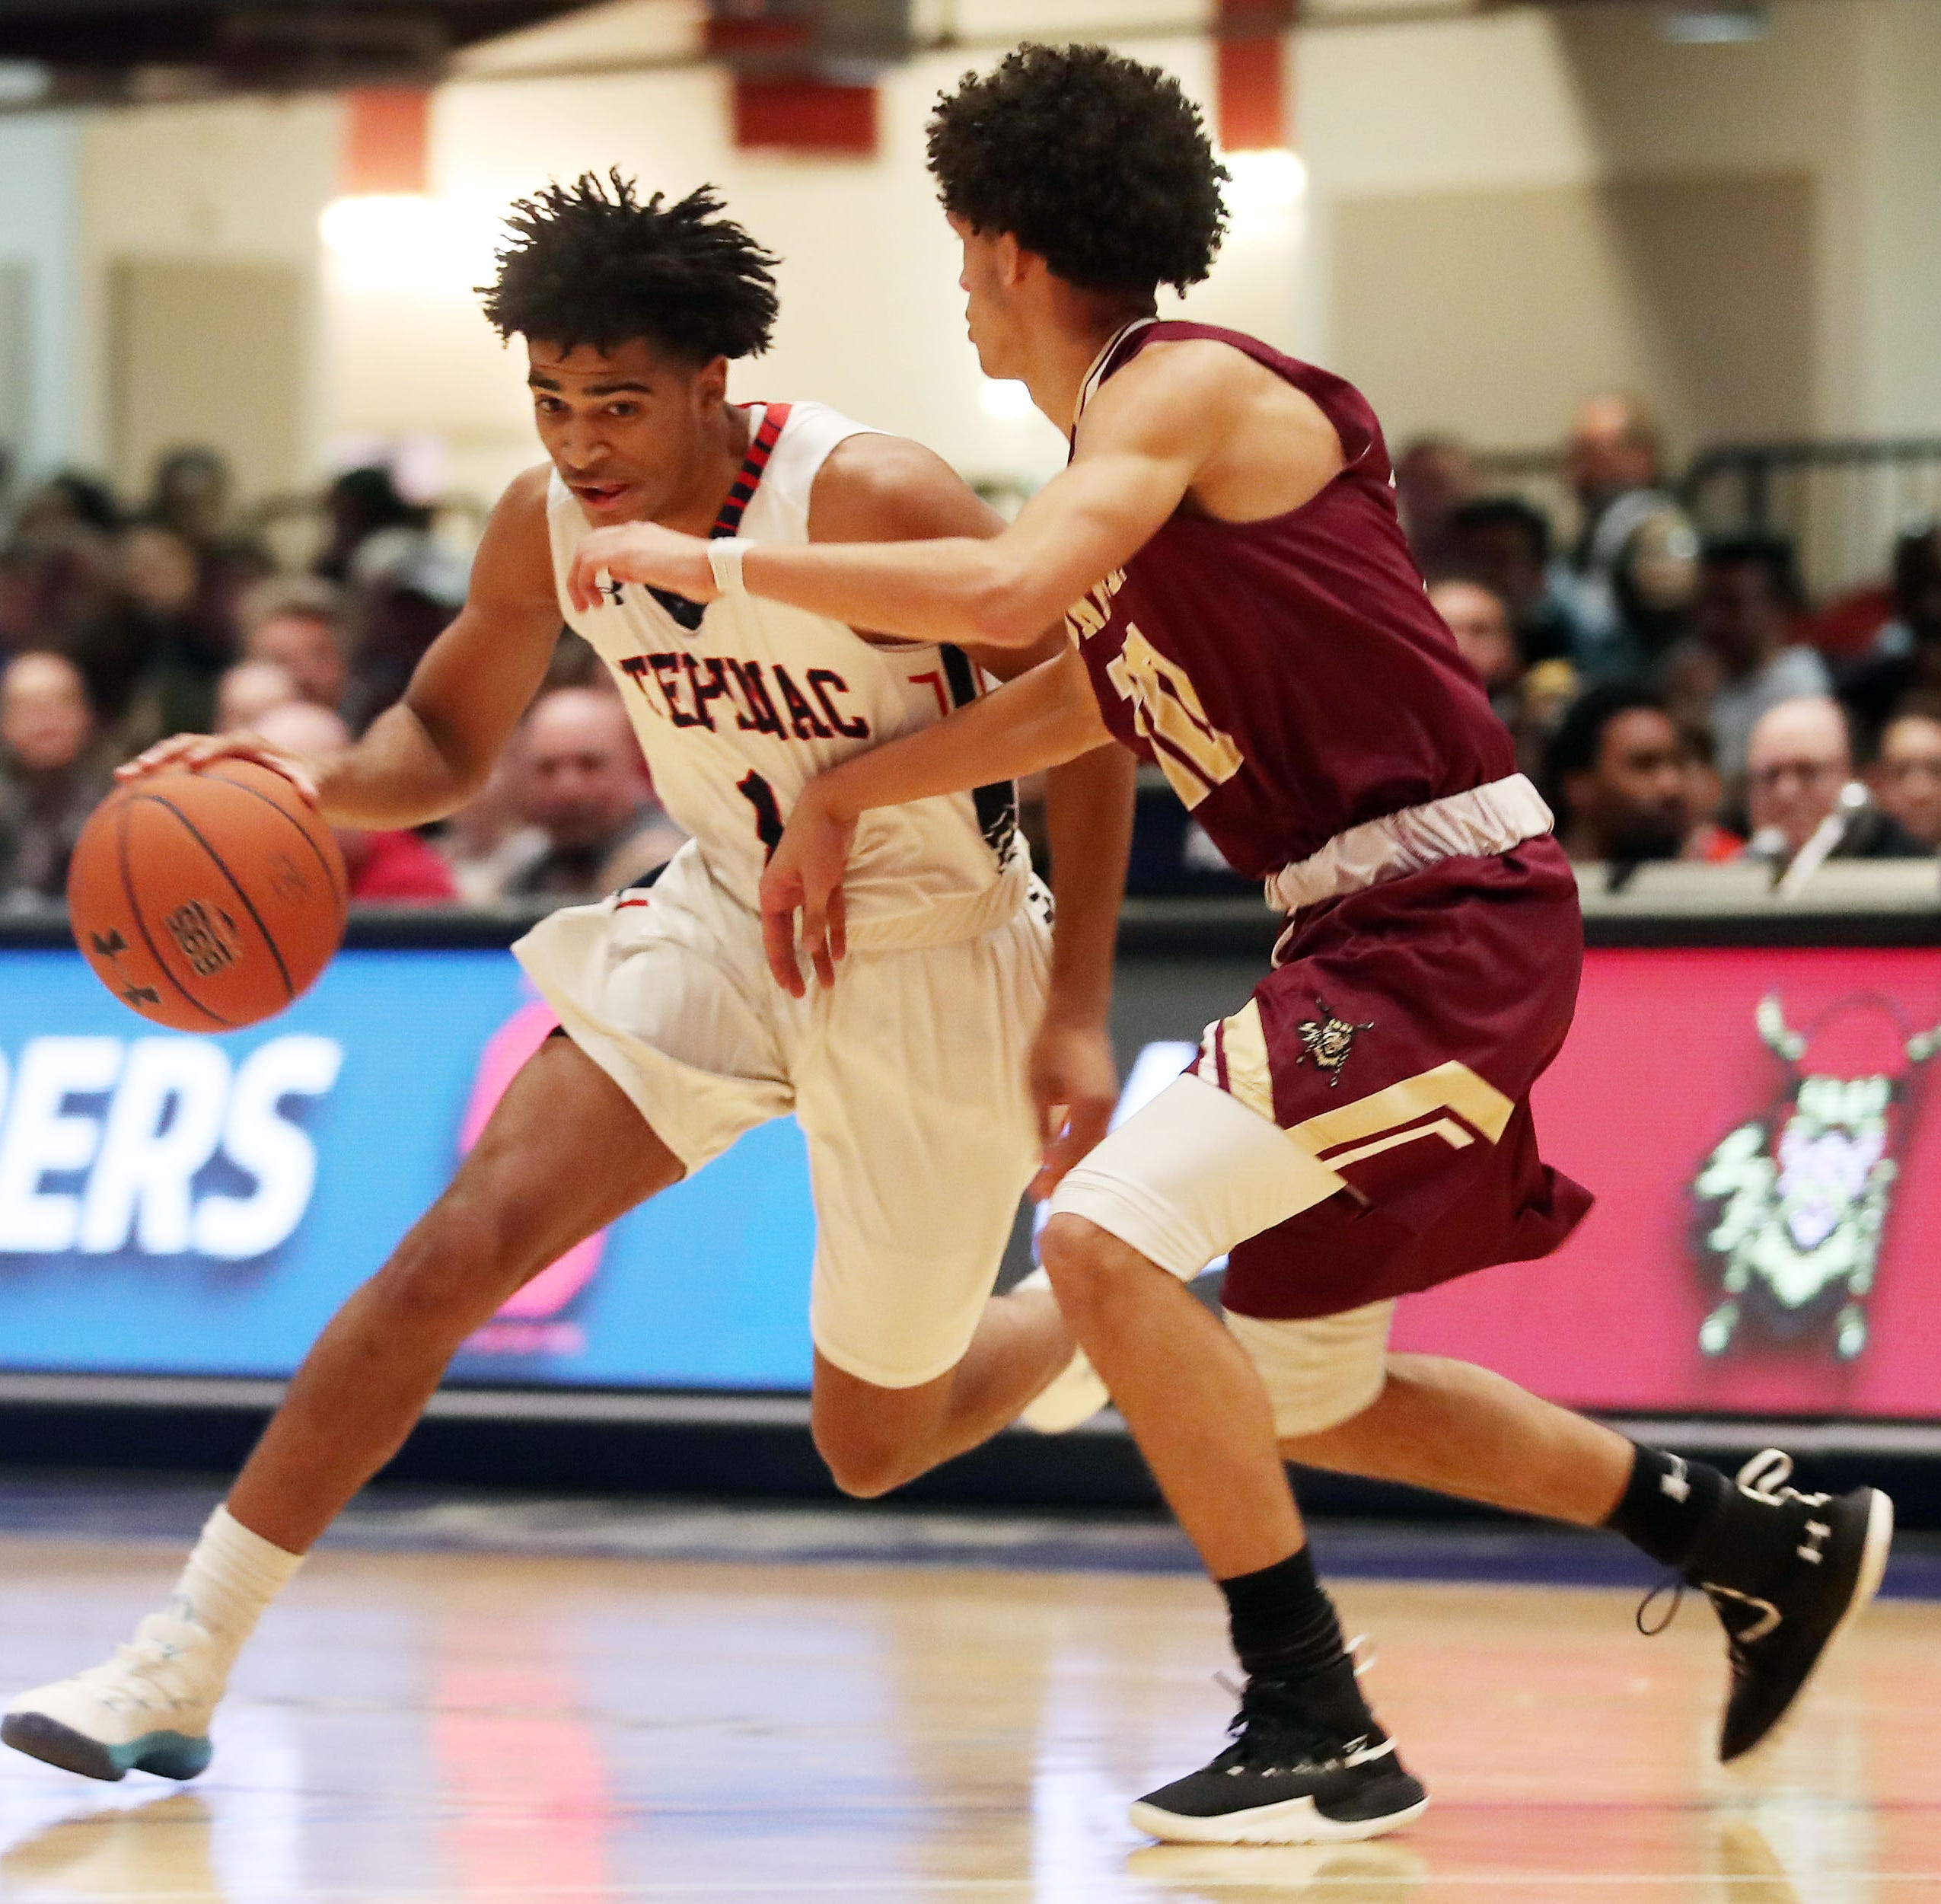 Boys basketball: Vote now for lohud Player of the Week